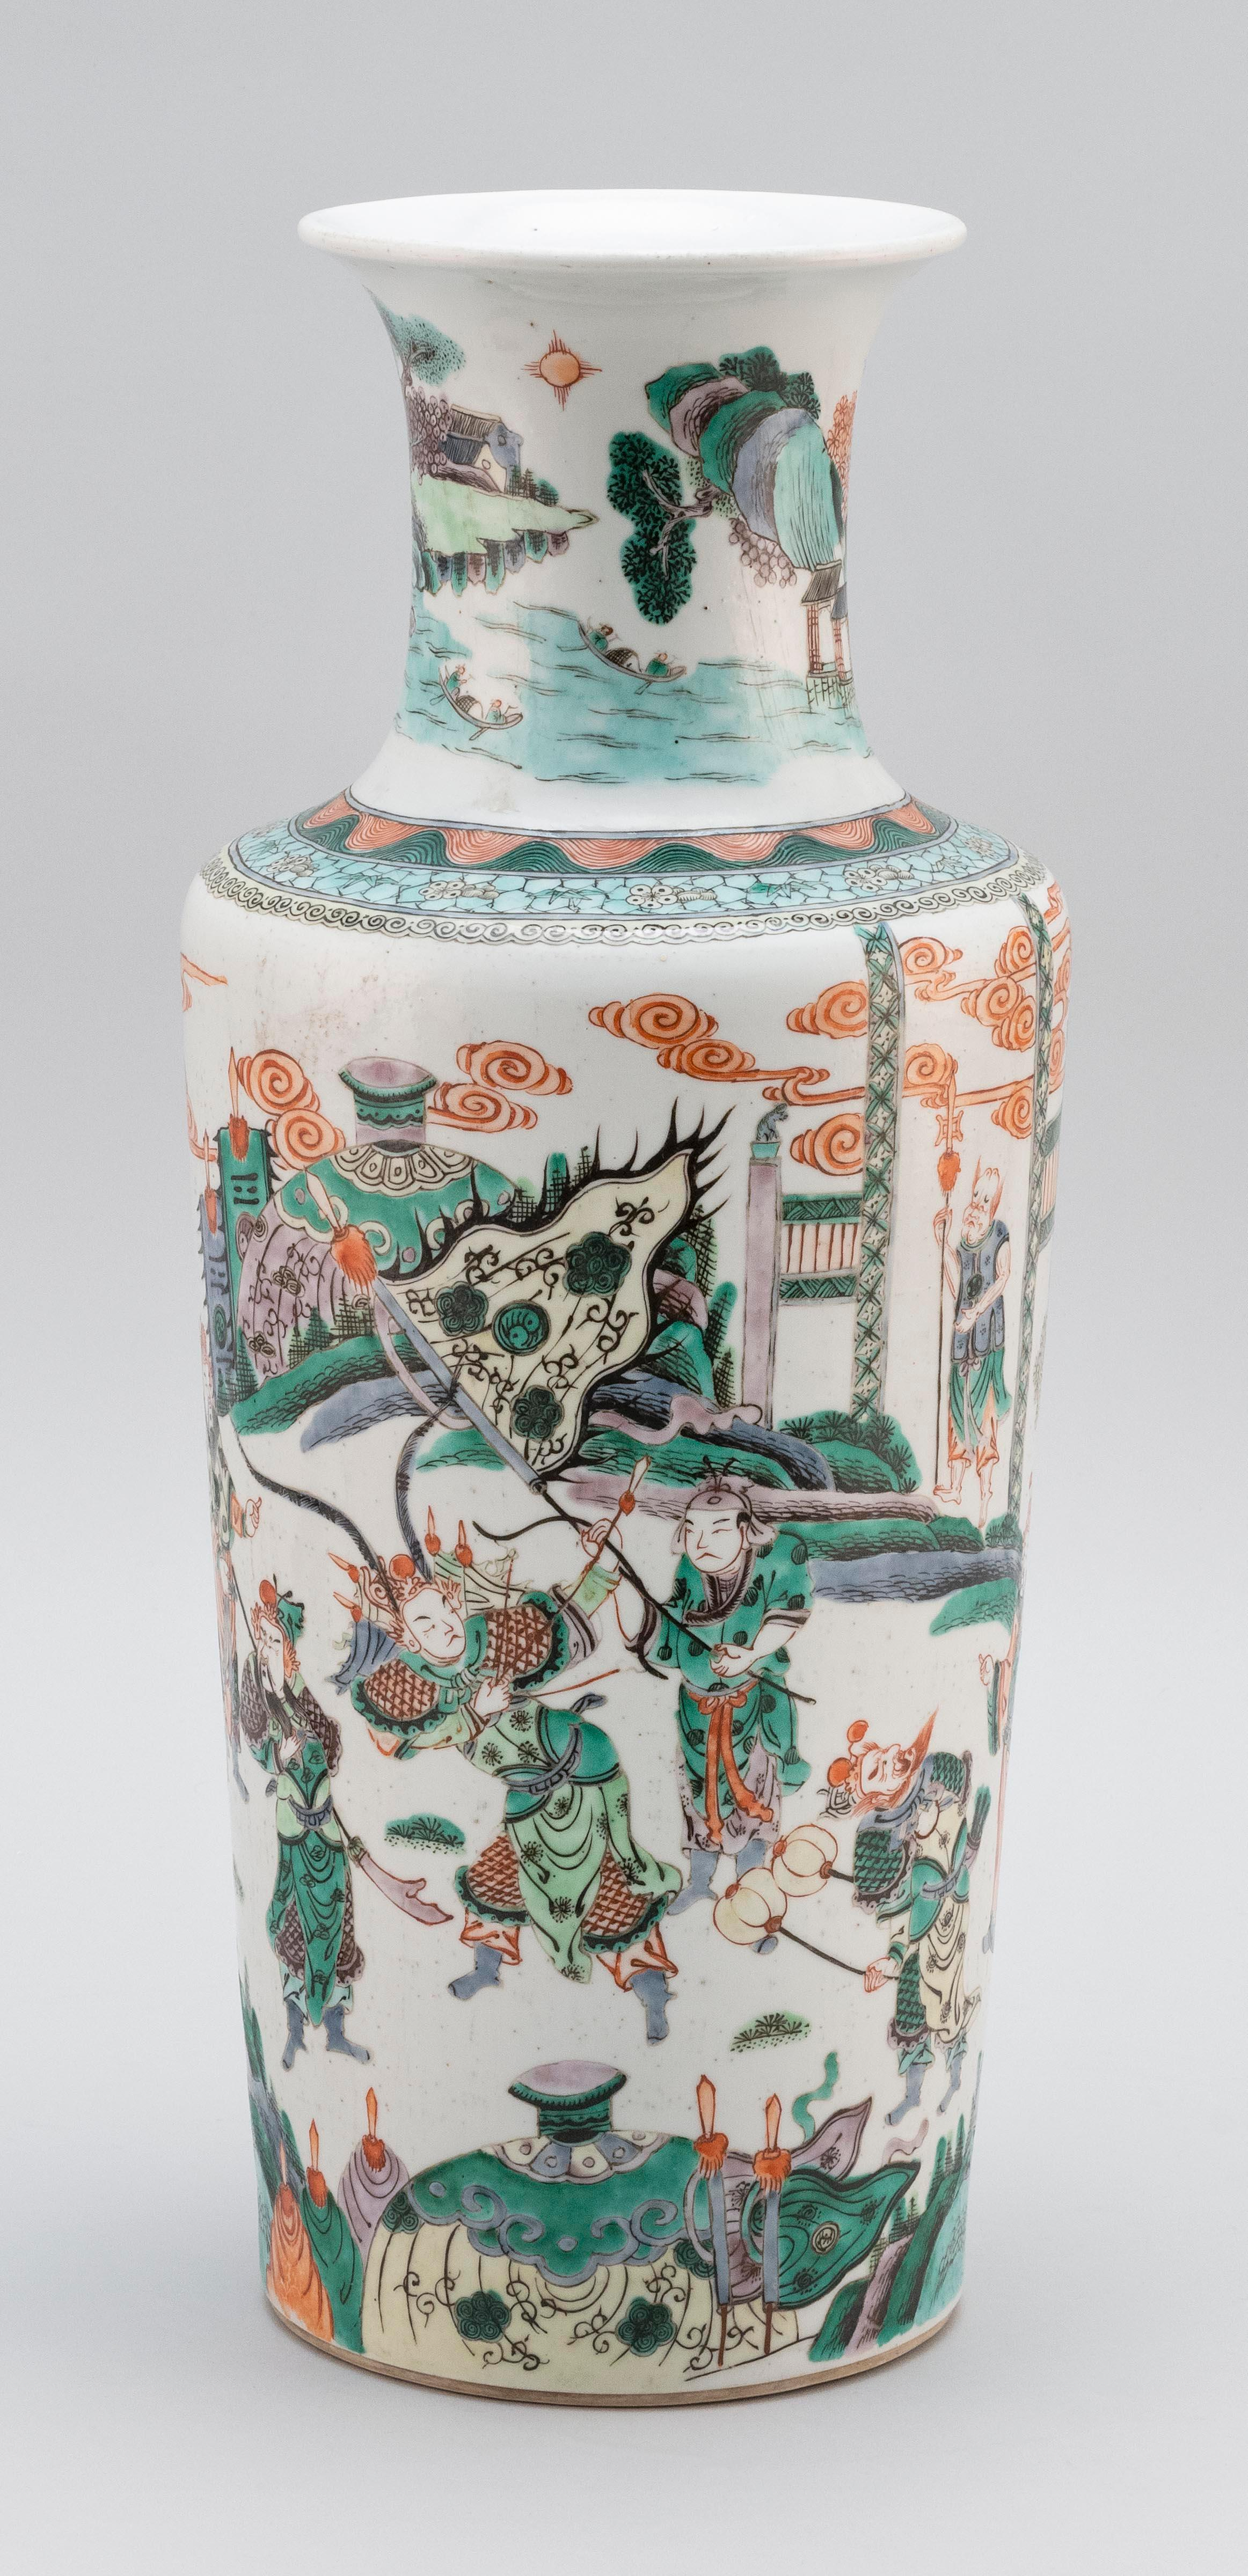 """CHINESE FAMILLE VERTE PORCELAIN VASE In rouleau form, with warrior landscape scene. Six-character Kangxi mark on base. Height 17.5""""."""